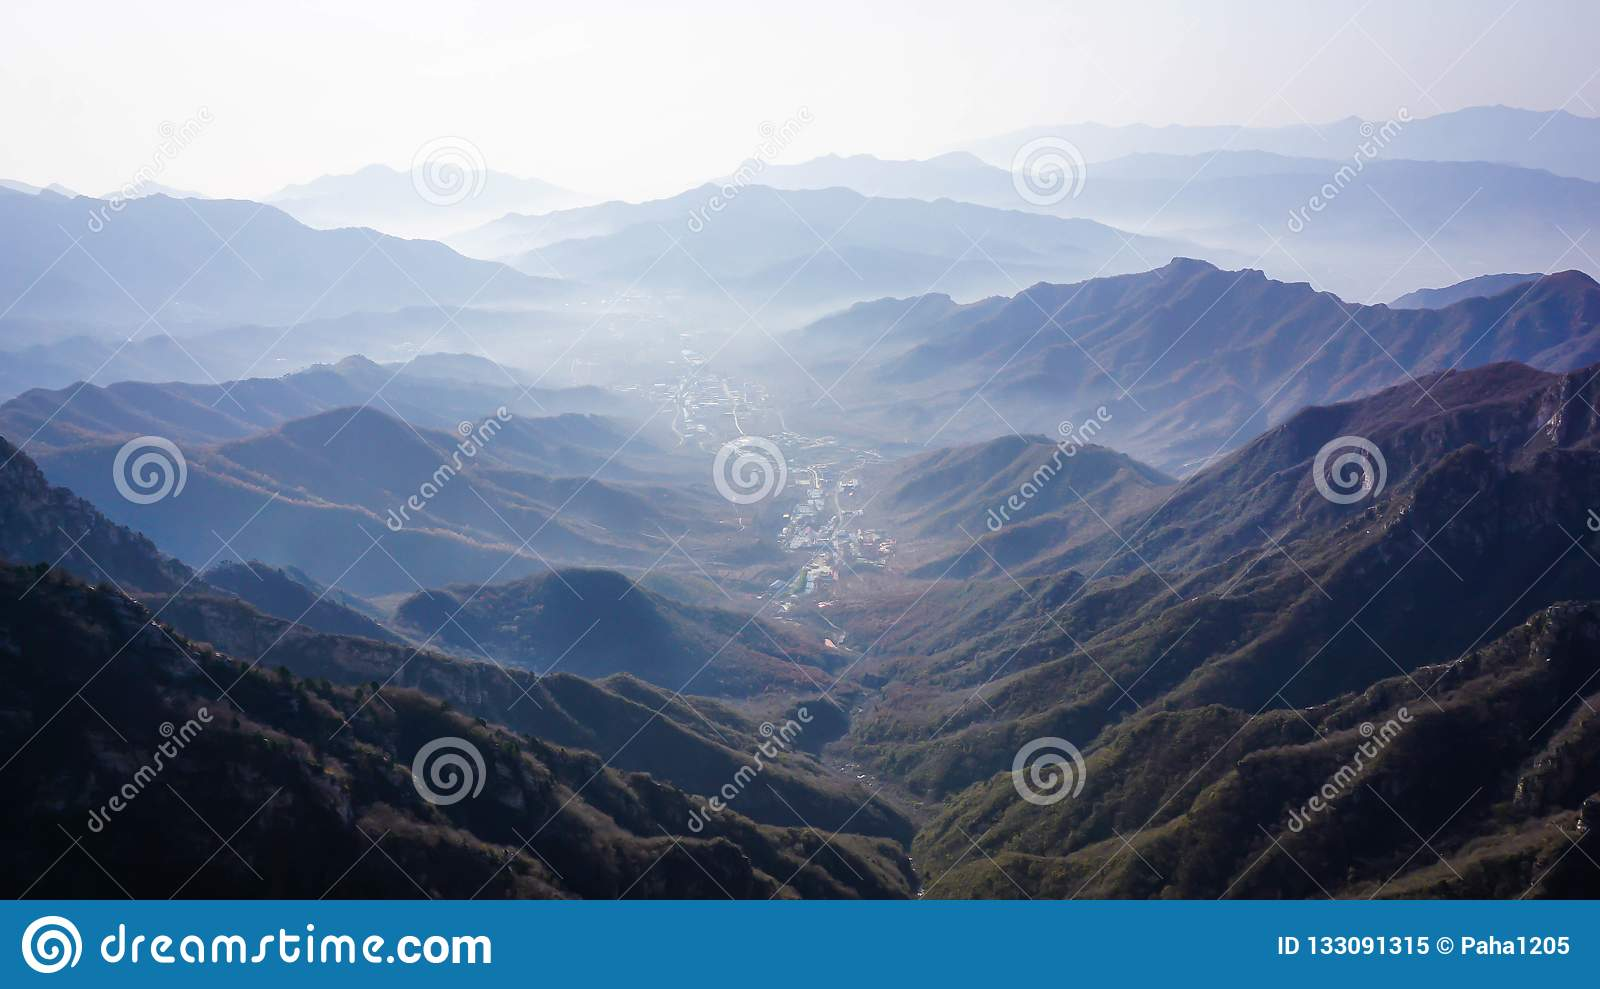 Wonderful landscape of a Chinese village from the top of the Great Wall of China